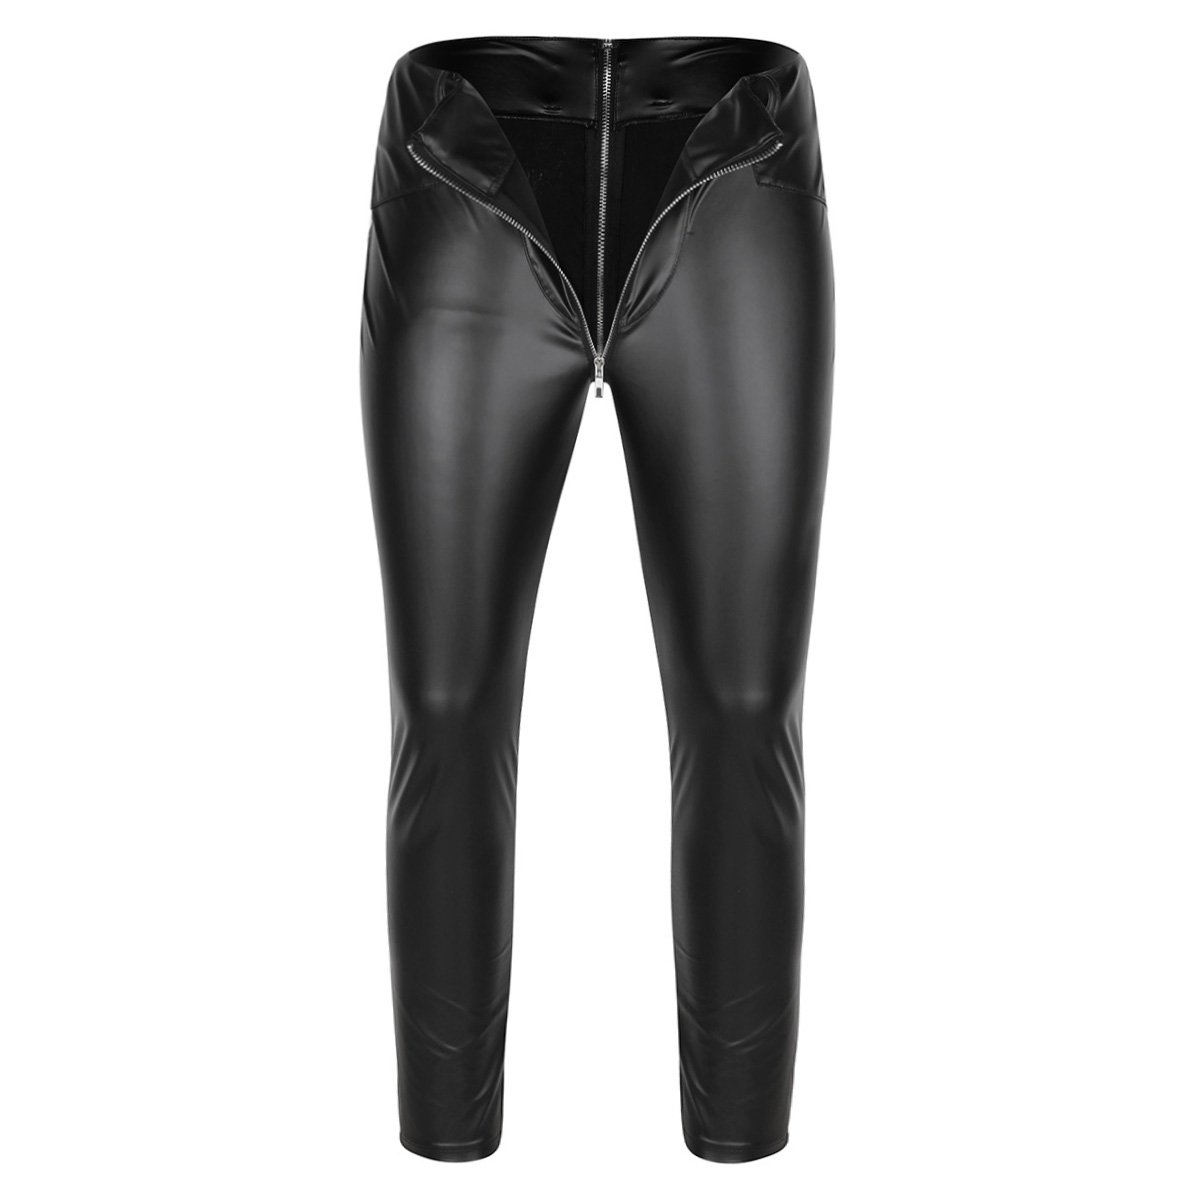 CHICTRY Men's Faux Leather Wetlook Tight Pants PVC Long Trousers with Zipper Crotch